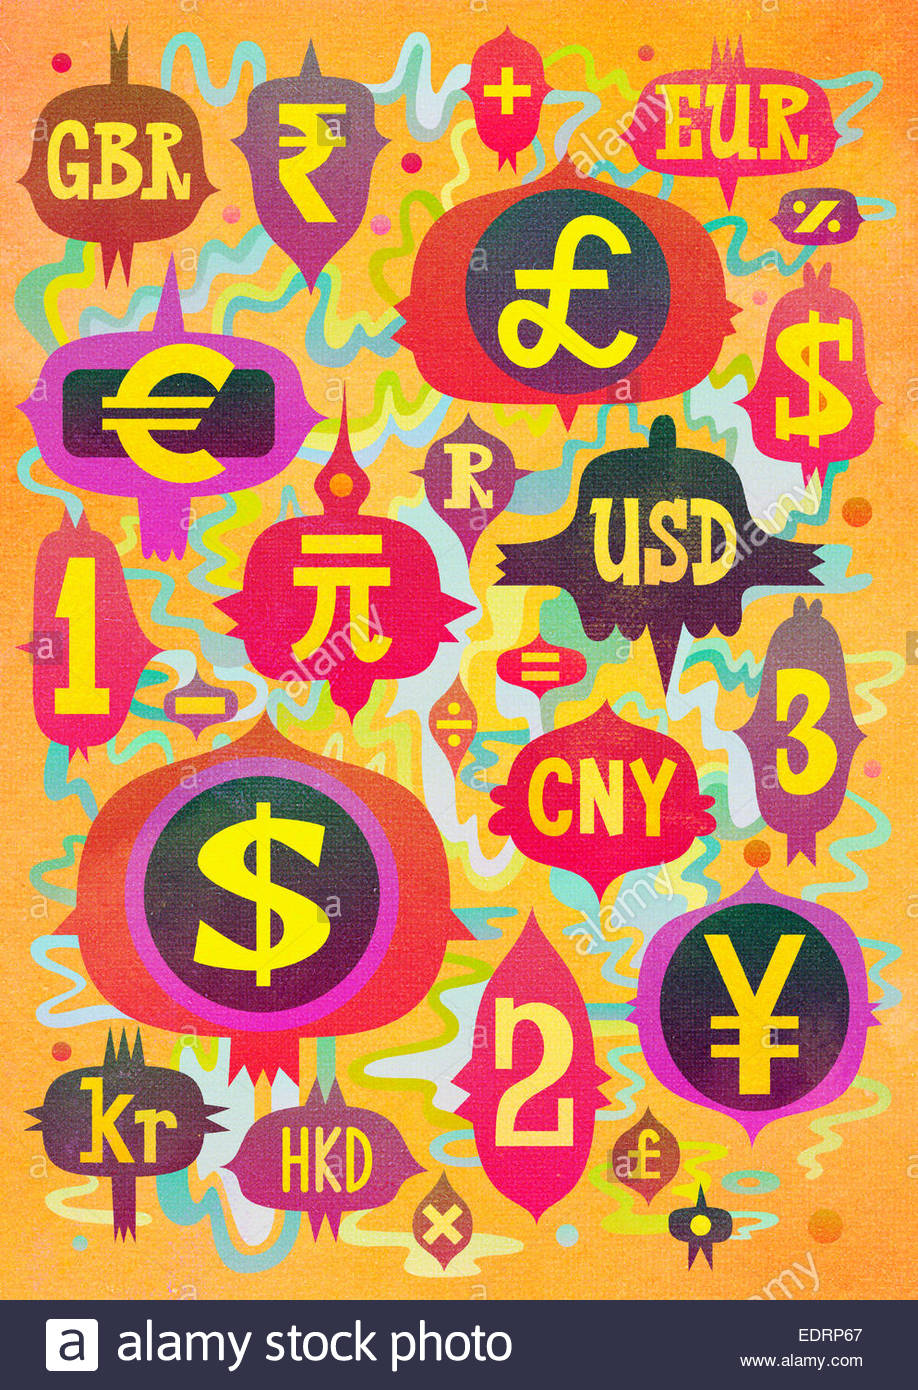 Abstract pattern of global currency symbols and abbreviations - Stock Image